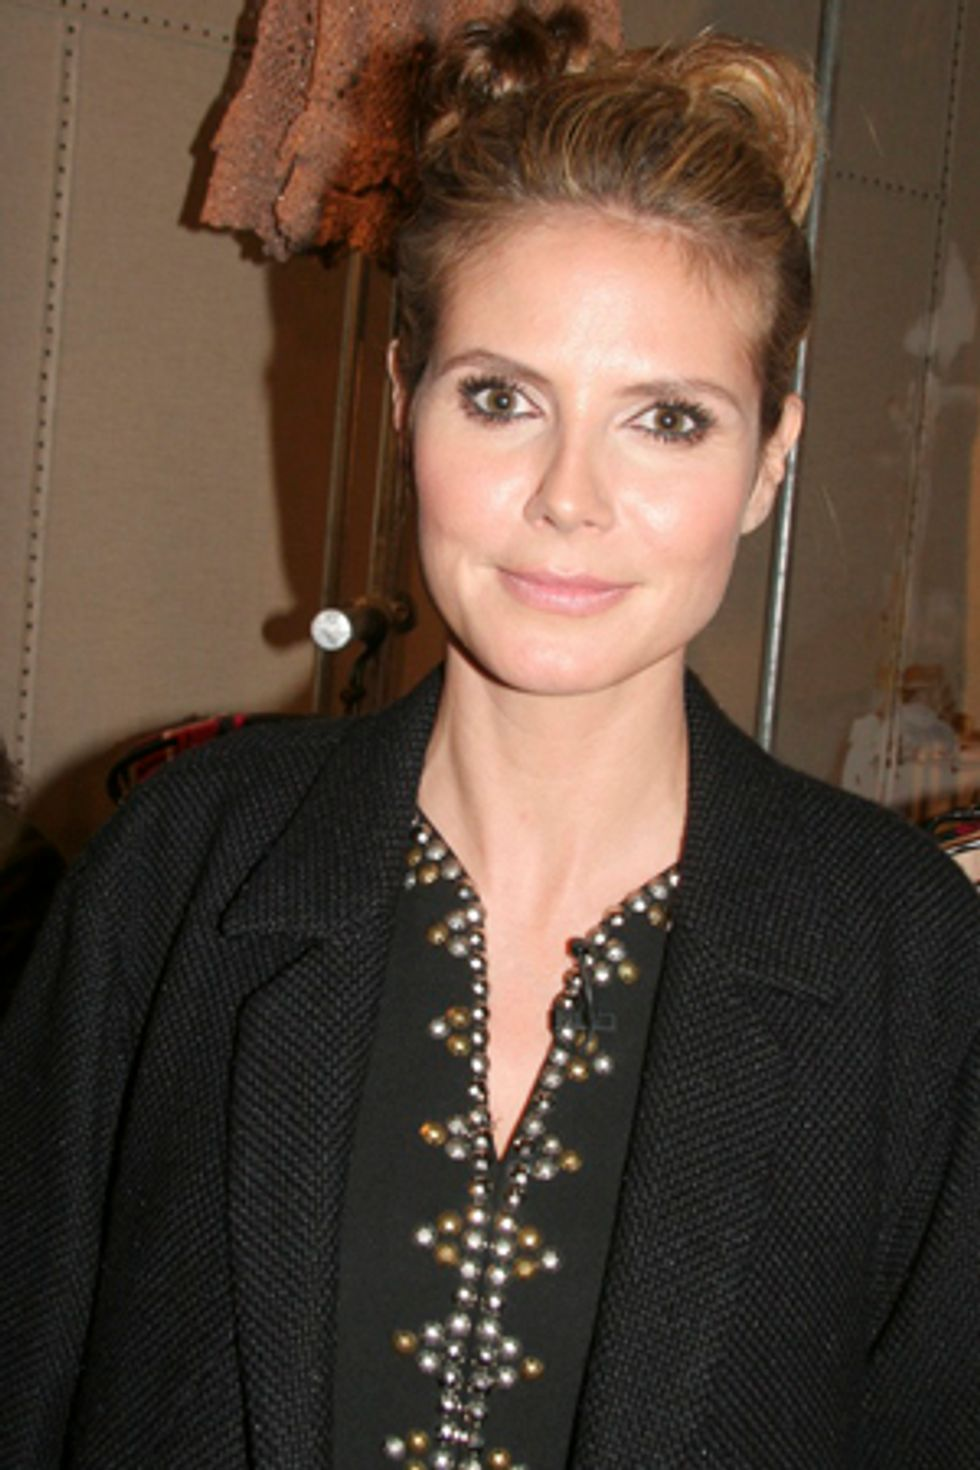 Chit-Chatting With Heidi Klum, Kelly Osbourne and Kate Mara at the Odd Molly Opening